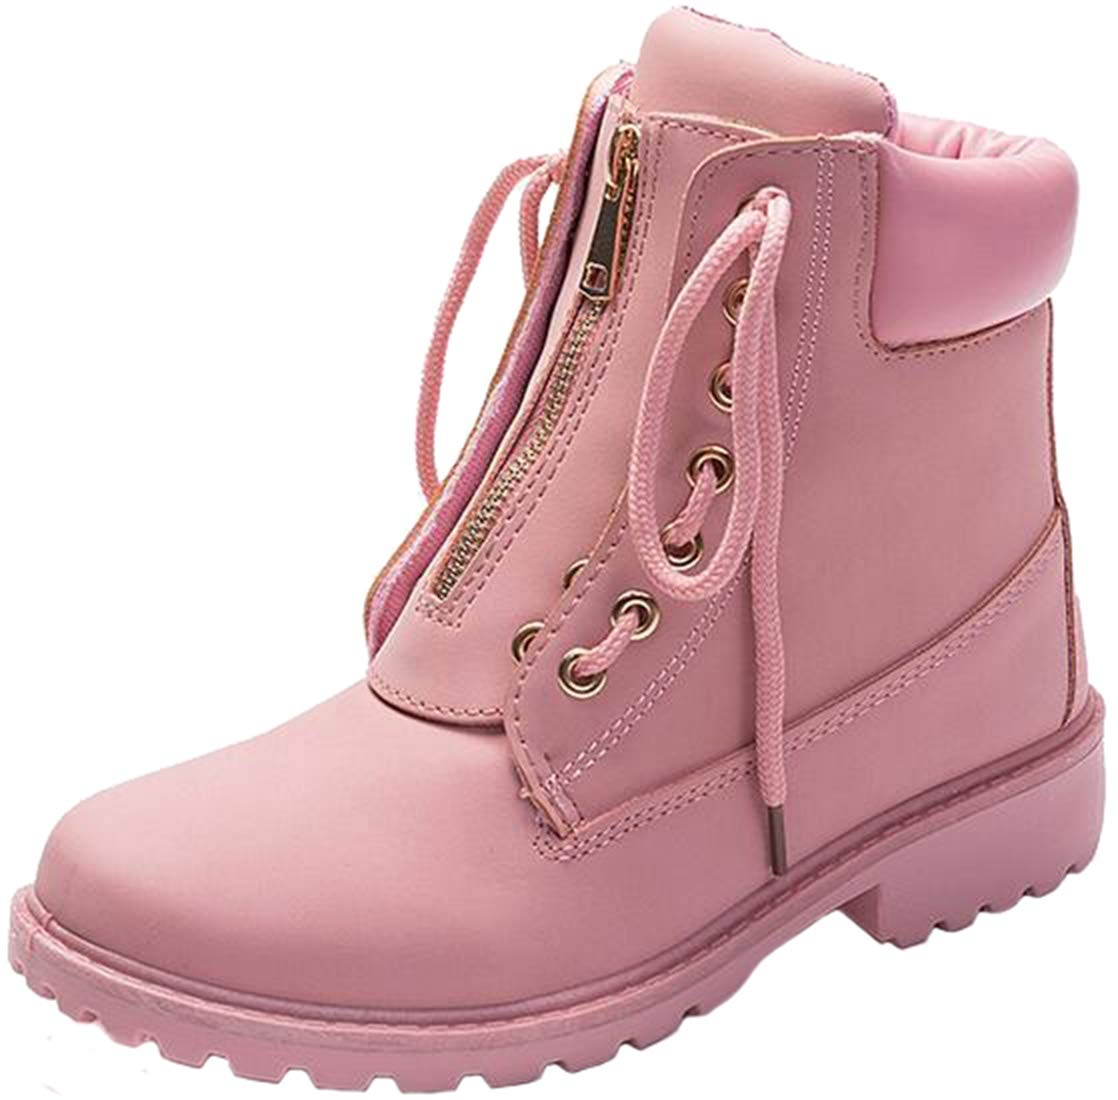 PPXID Women's Outdoor Zip Lace Up Trekking Combat Ankle Boots-Pink 6 US Size